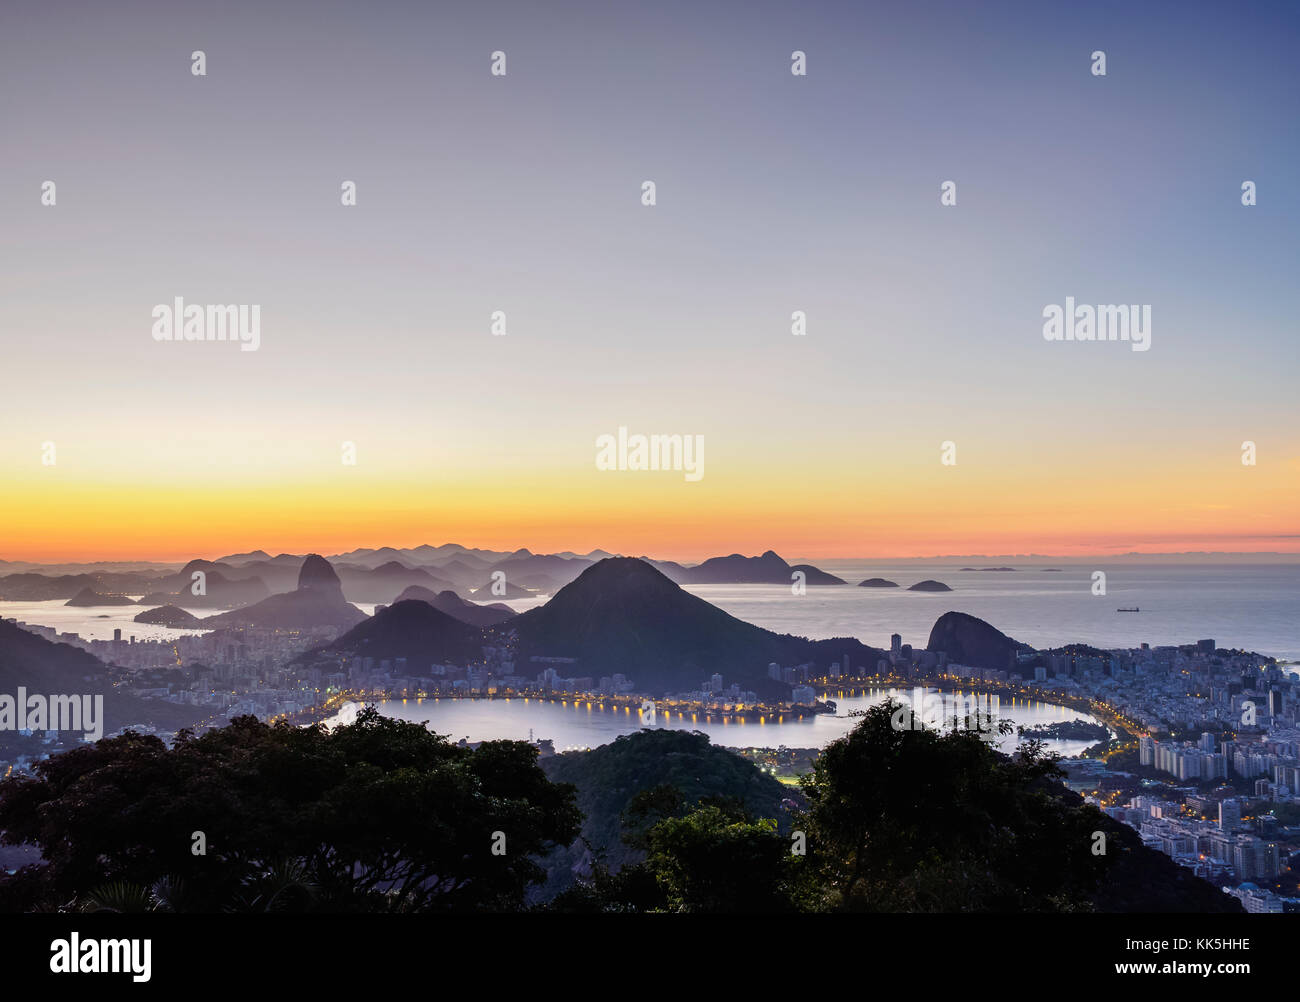 Cityscape from Vista Chinesa at dawn, Rio de Janeiro, Brazil Stock Photo